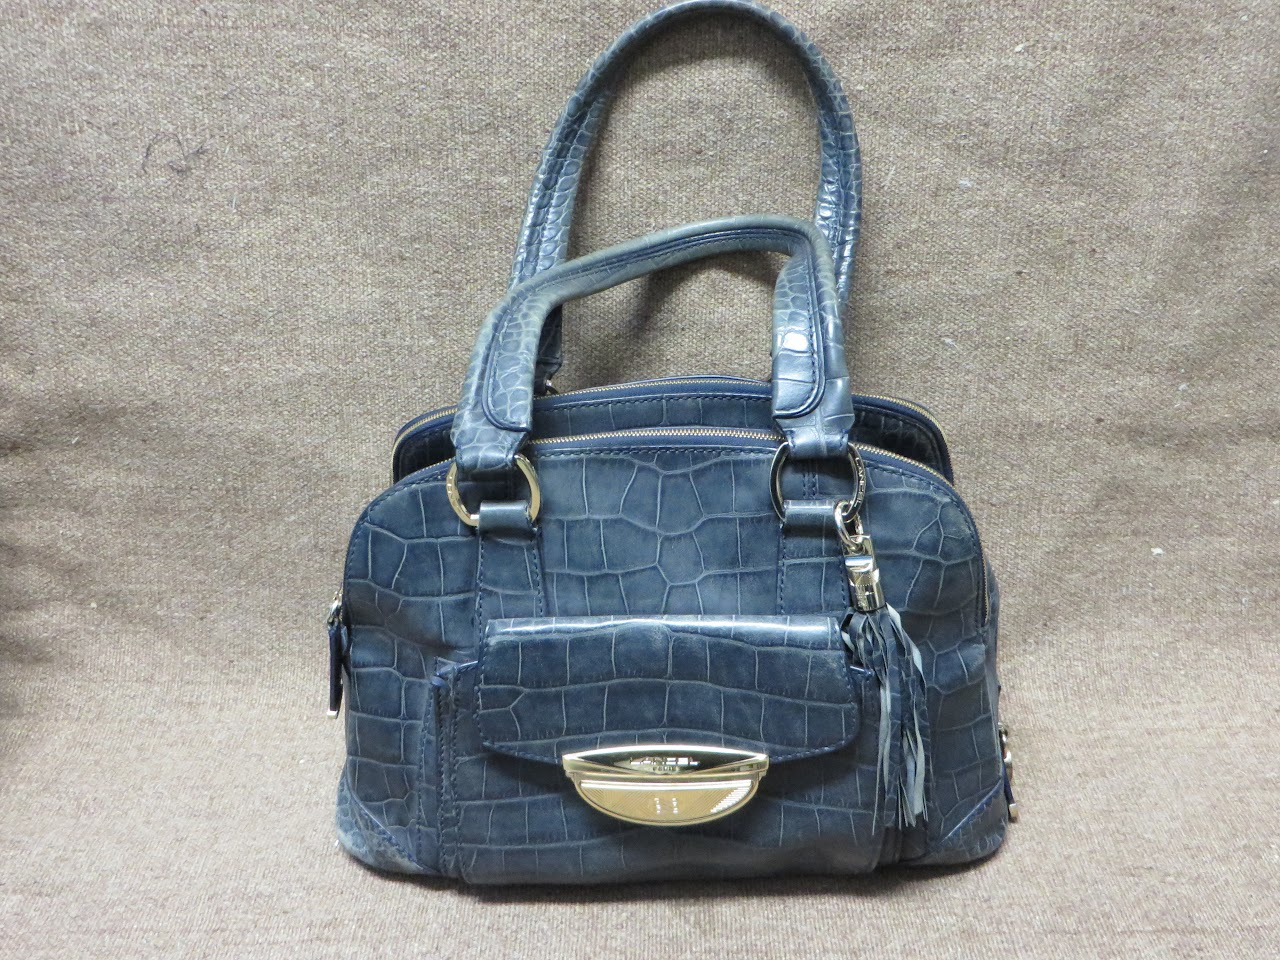 Lancel Paris Handbag